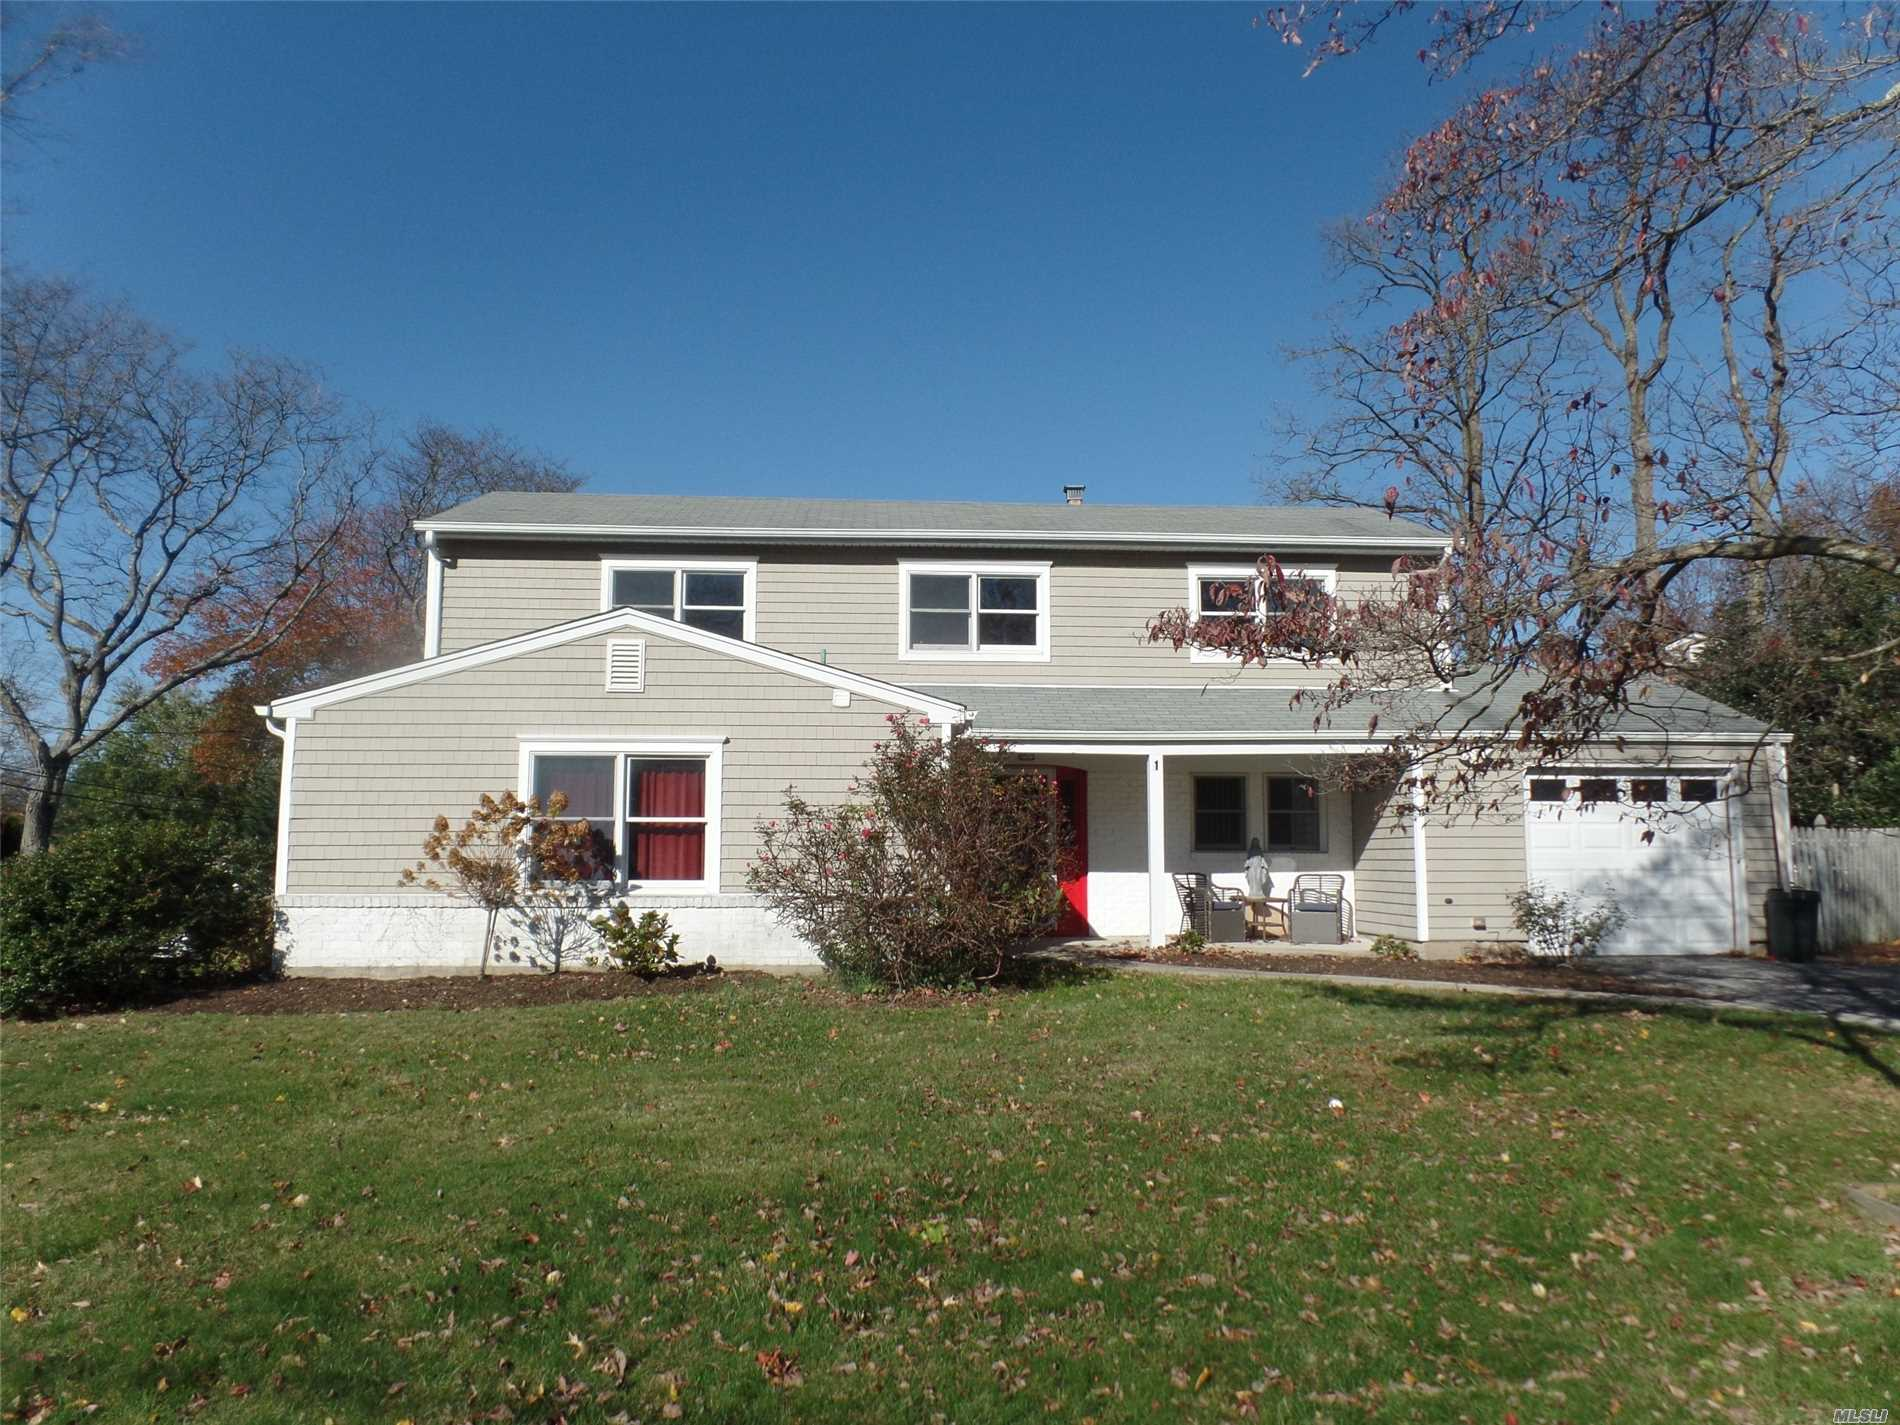 Beautiful Home For Rent In The Heart Of Huntington. Lots Of Updates To The House, Including The Kitchen And Full Bathroom. Open Floor Plan With Fireplace In The Living Room. Large Yard. Huge Basement For Storage. Garage Included. Will Not Last!